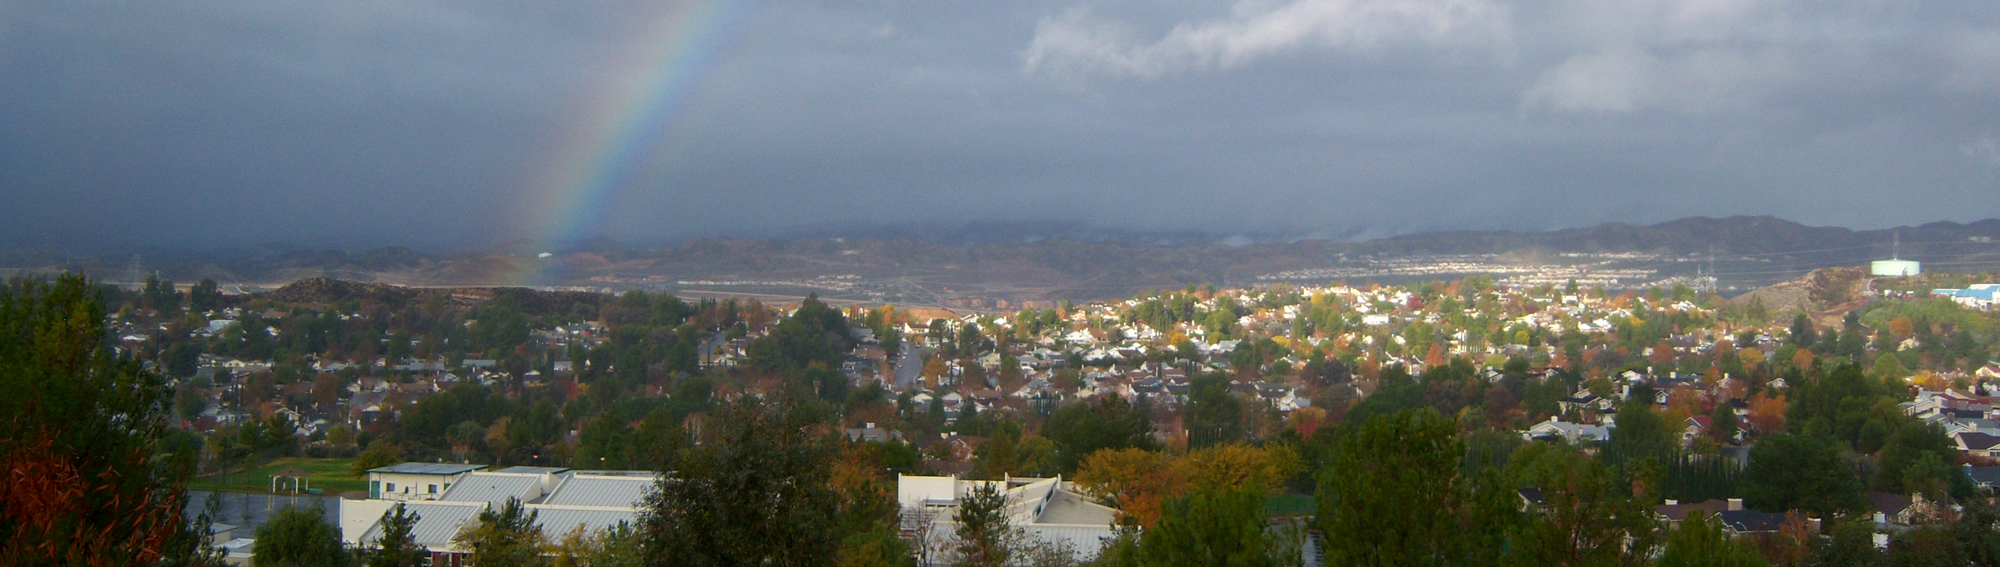 view of the town with a rainbow in the sky